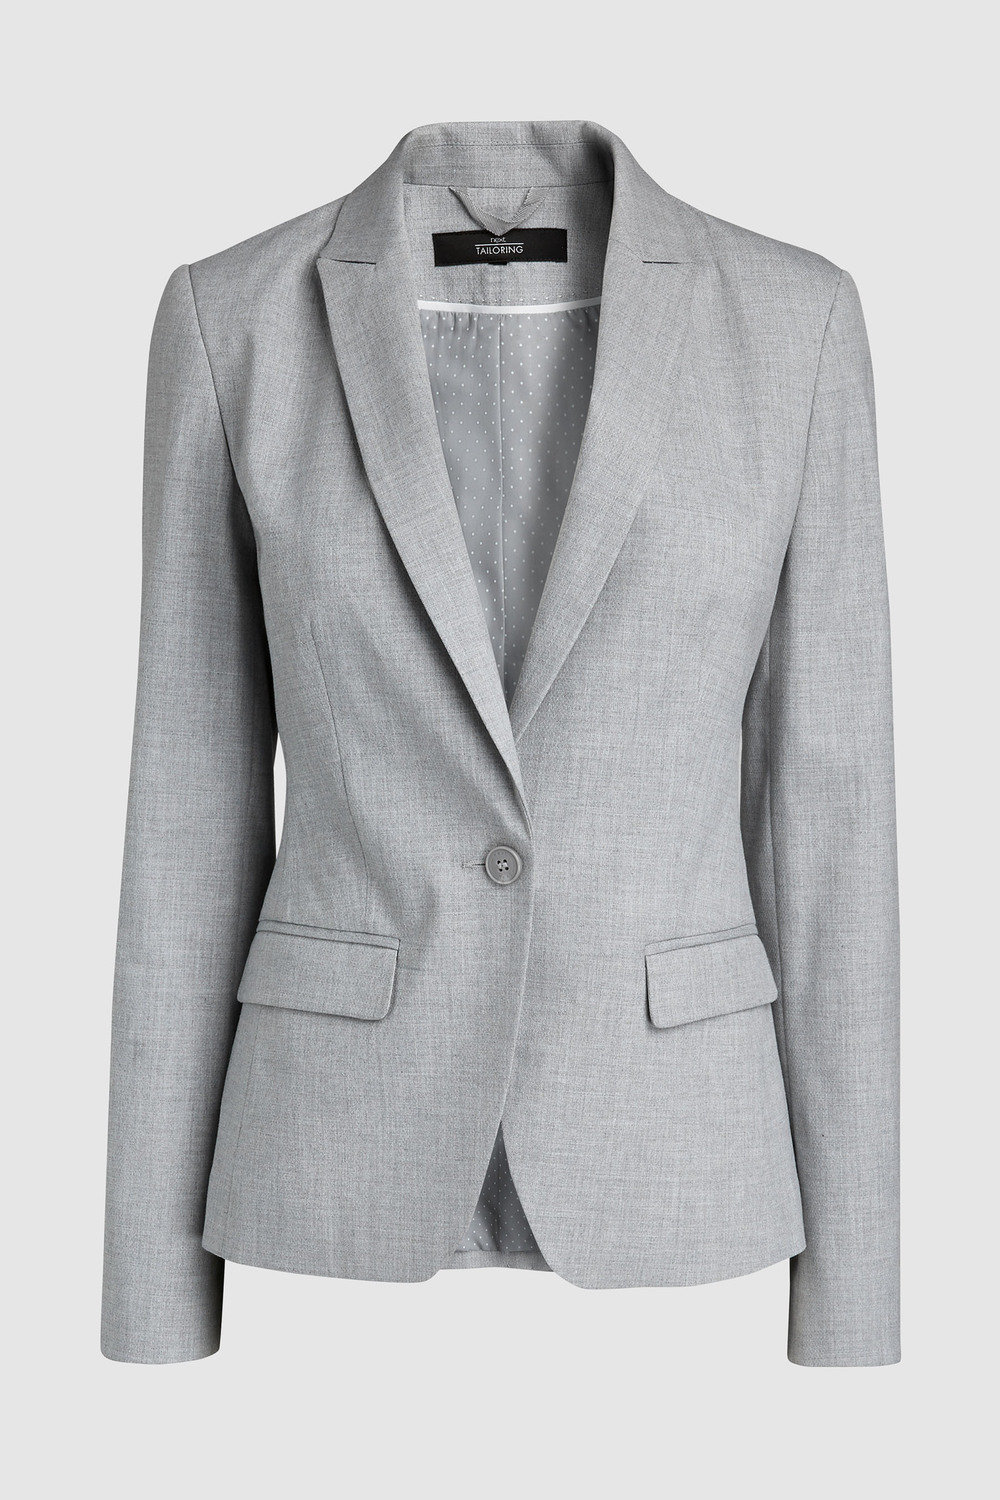 31a7b6734510 Next Tailored Fit Single Breasted Suit Jacket Online